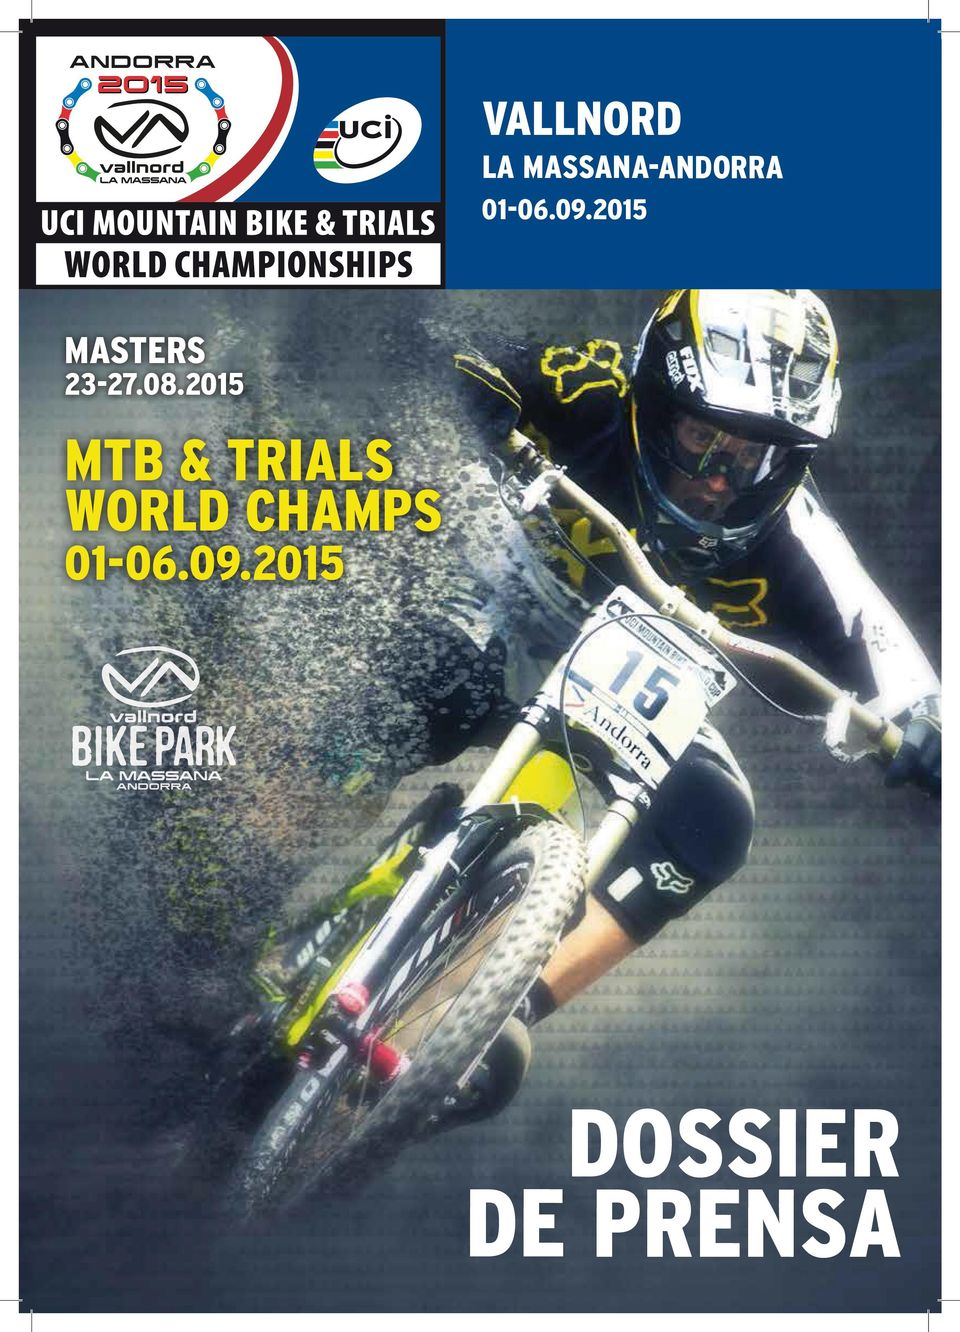 2015 MTB & TRIALS WORLD CHAMPS